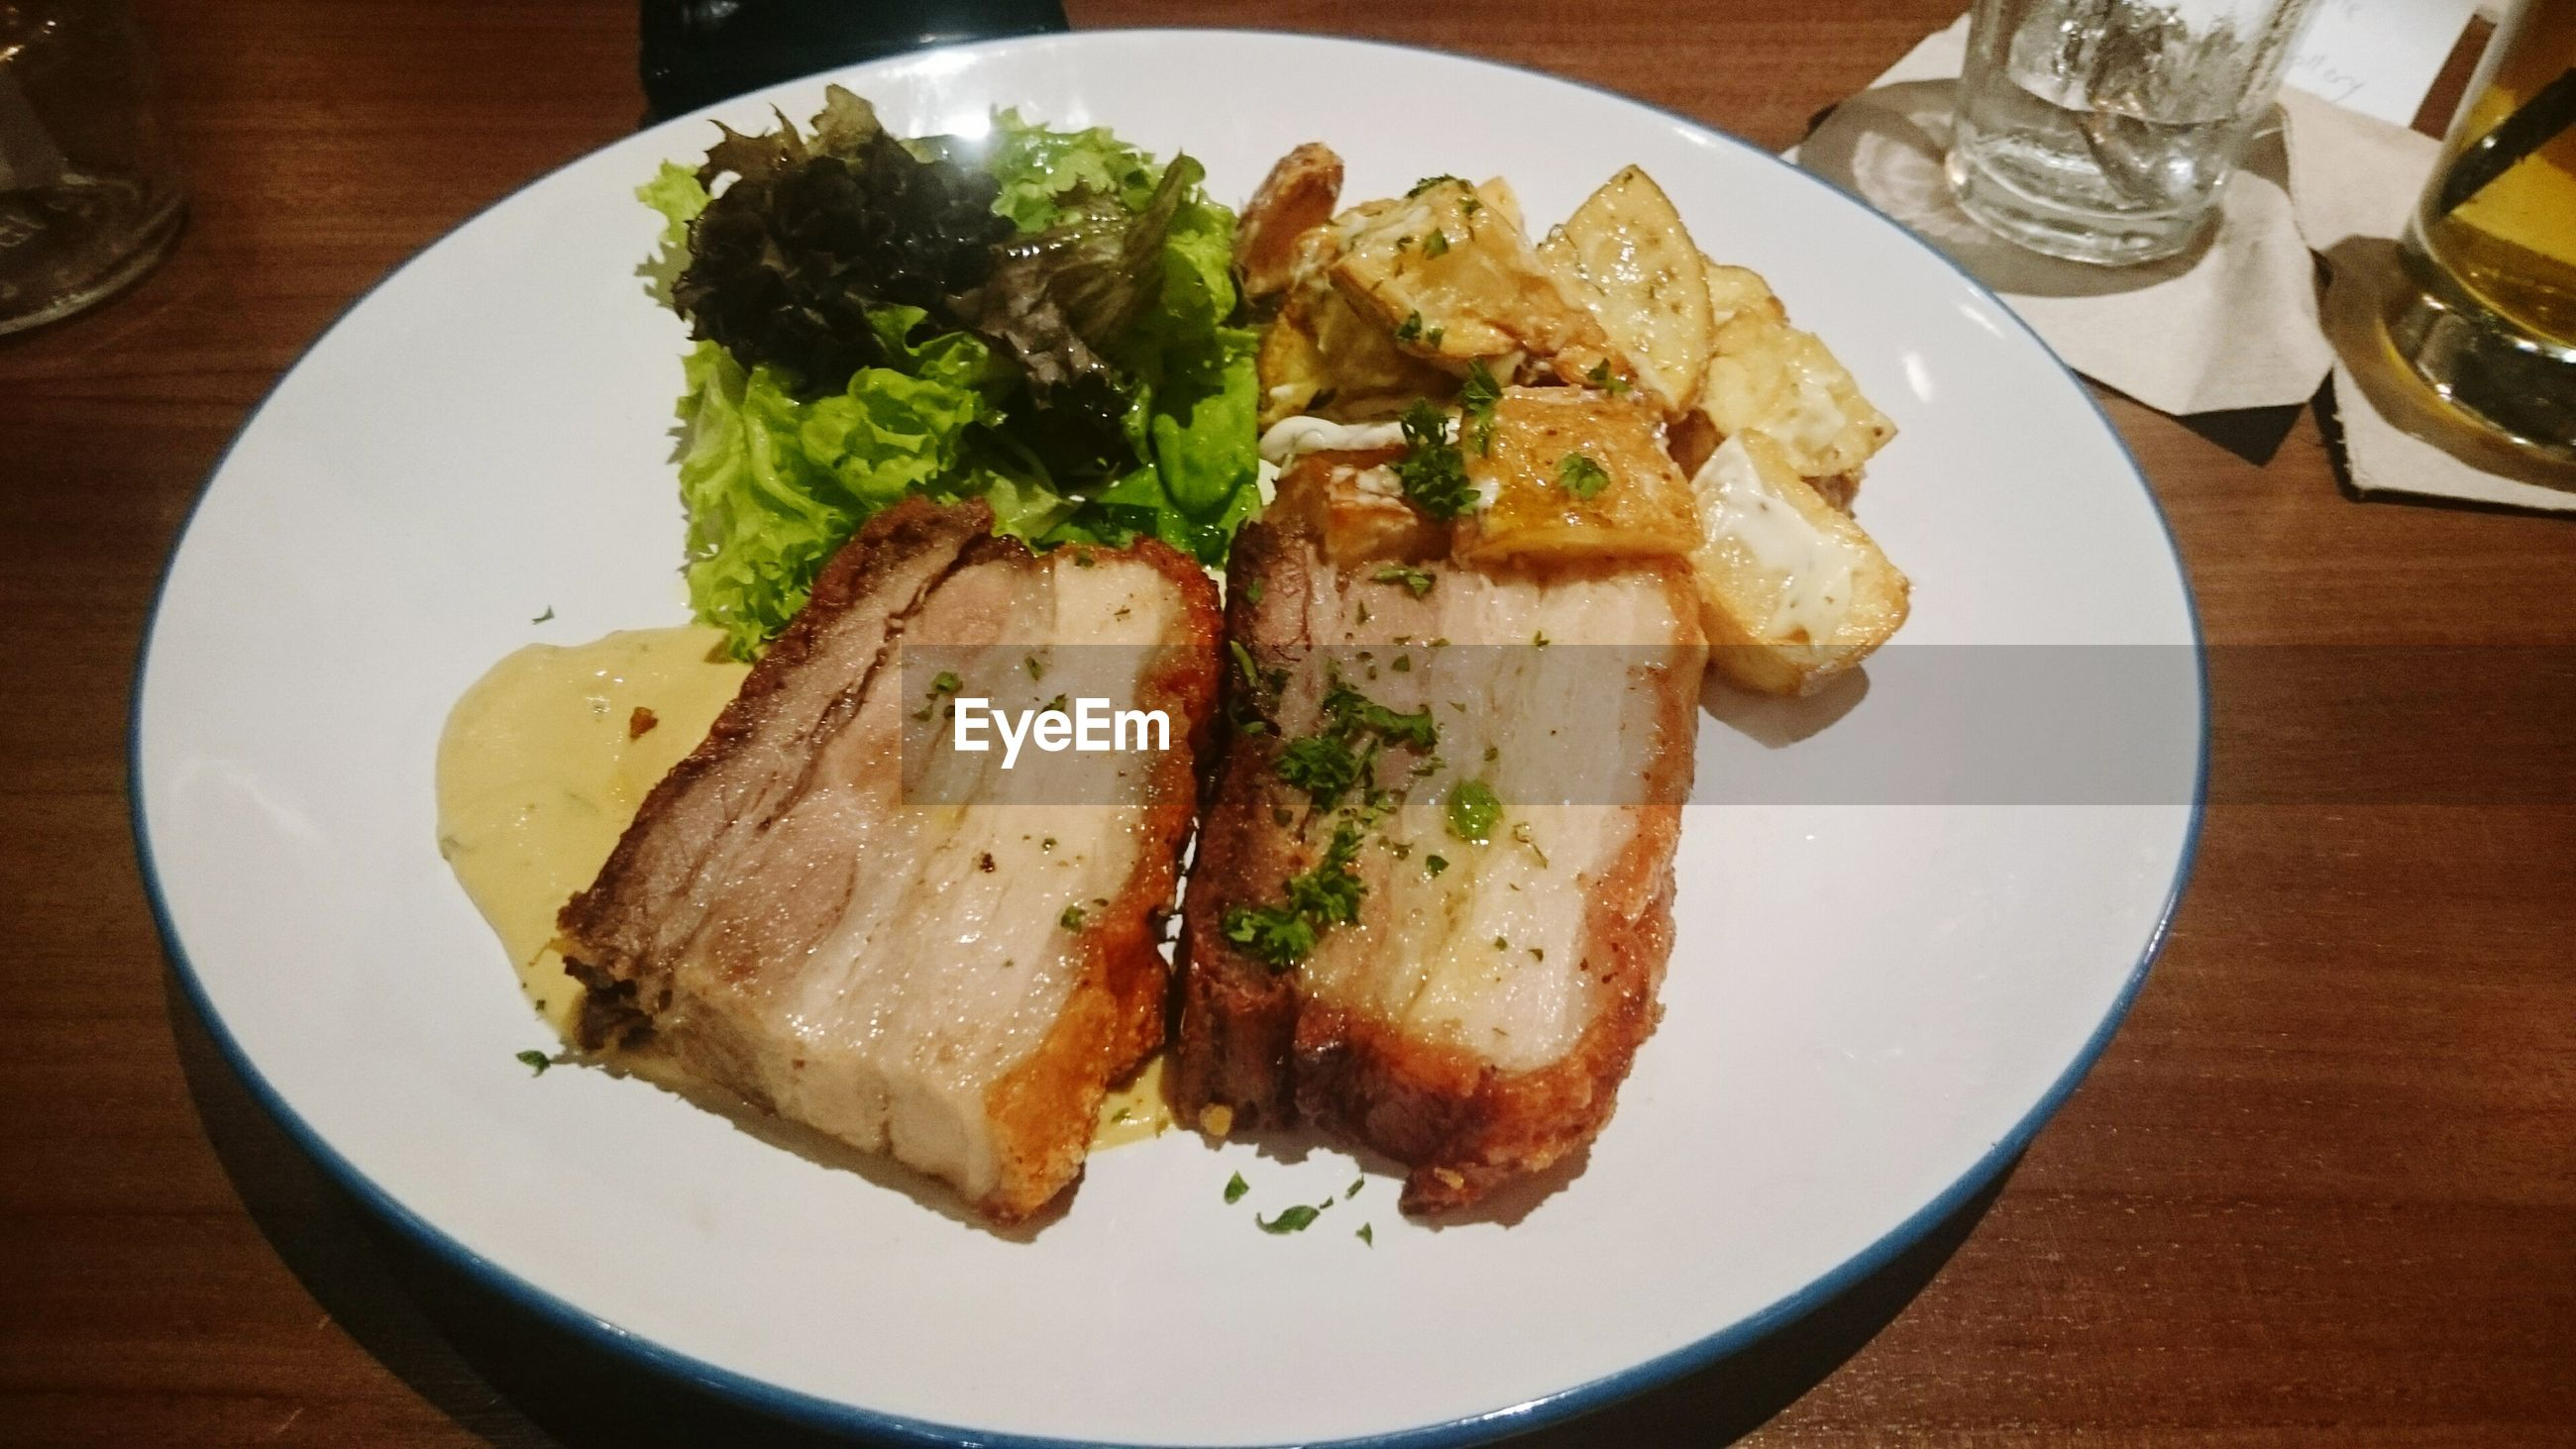 food and drink, food, indoors, plate, ready-to-eat, freshness, table, still life, serving size, meal, healthy eating, indulgence, meat, served, close-up, fork, high angle view, bread, slice, breakfast